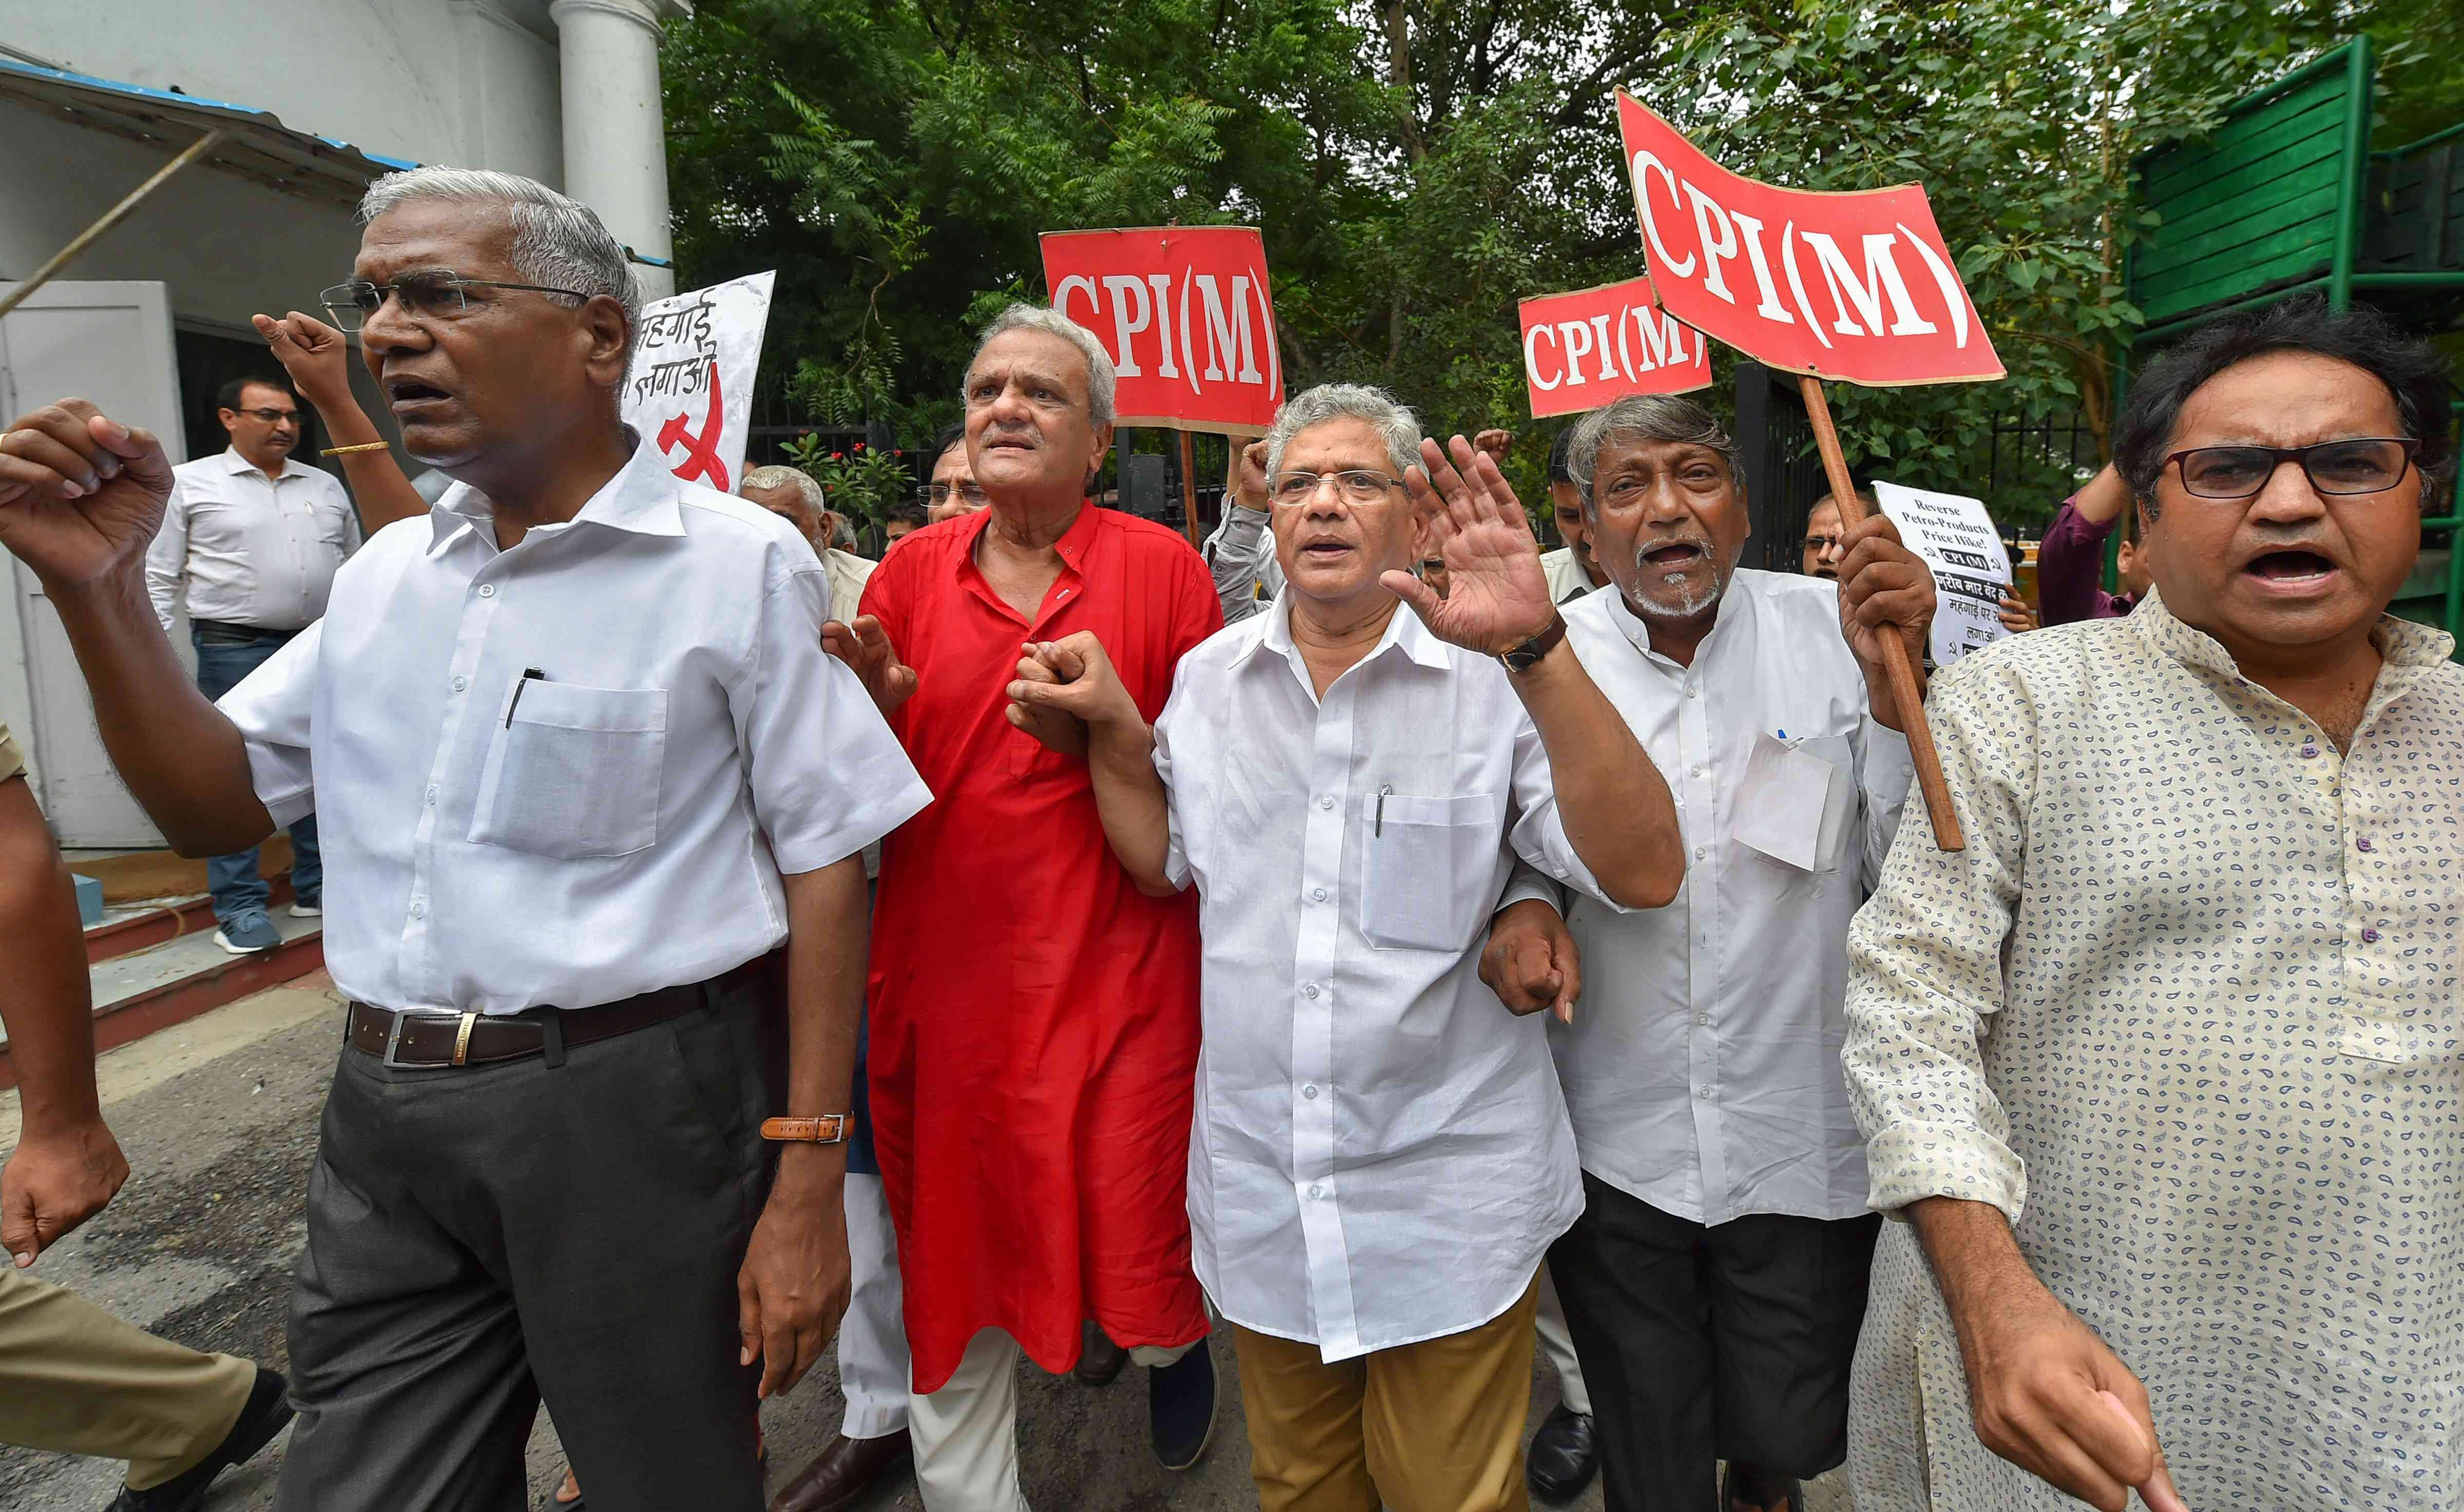 CPI(M) General Secretary Sitaram Yechury (centre), CPI leader D Raja (left) and other Left leaders at a rally in New Delhi on Monday afternoon. (Photo: PTI)